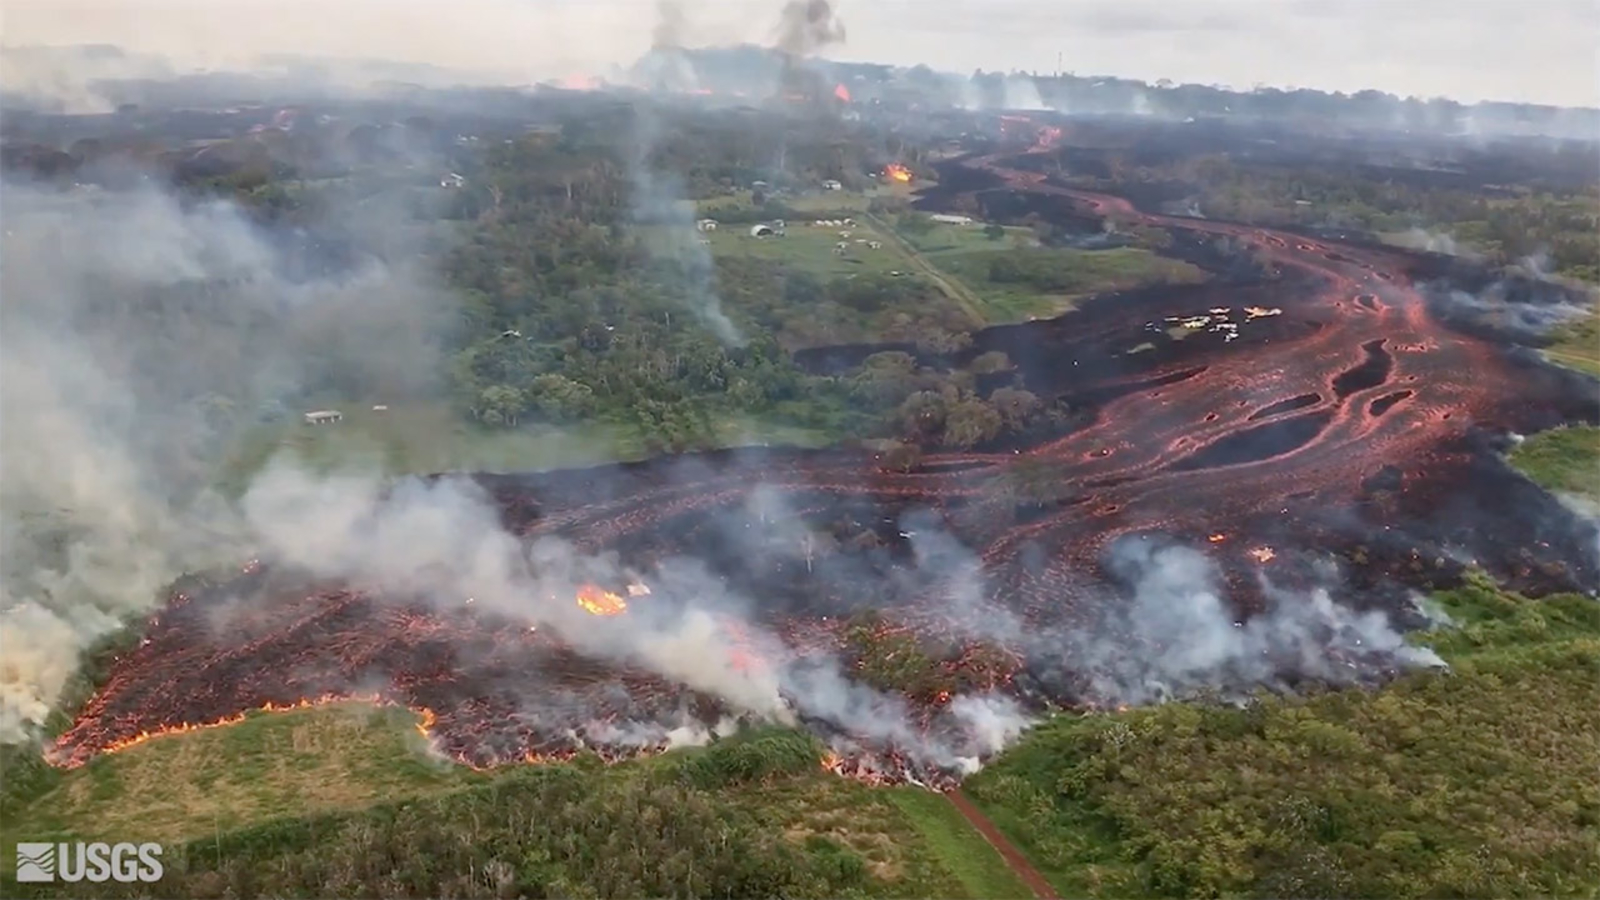 Hawaii volcano: Aerial footage shows extent of sprawling Kilauea lava flow